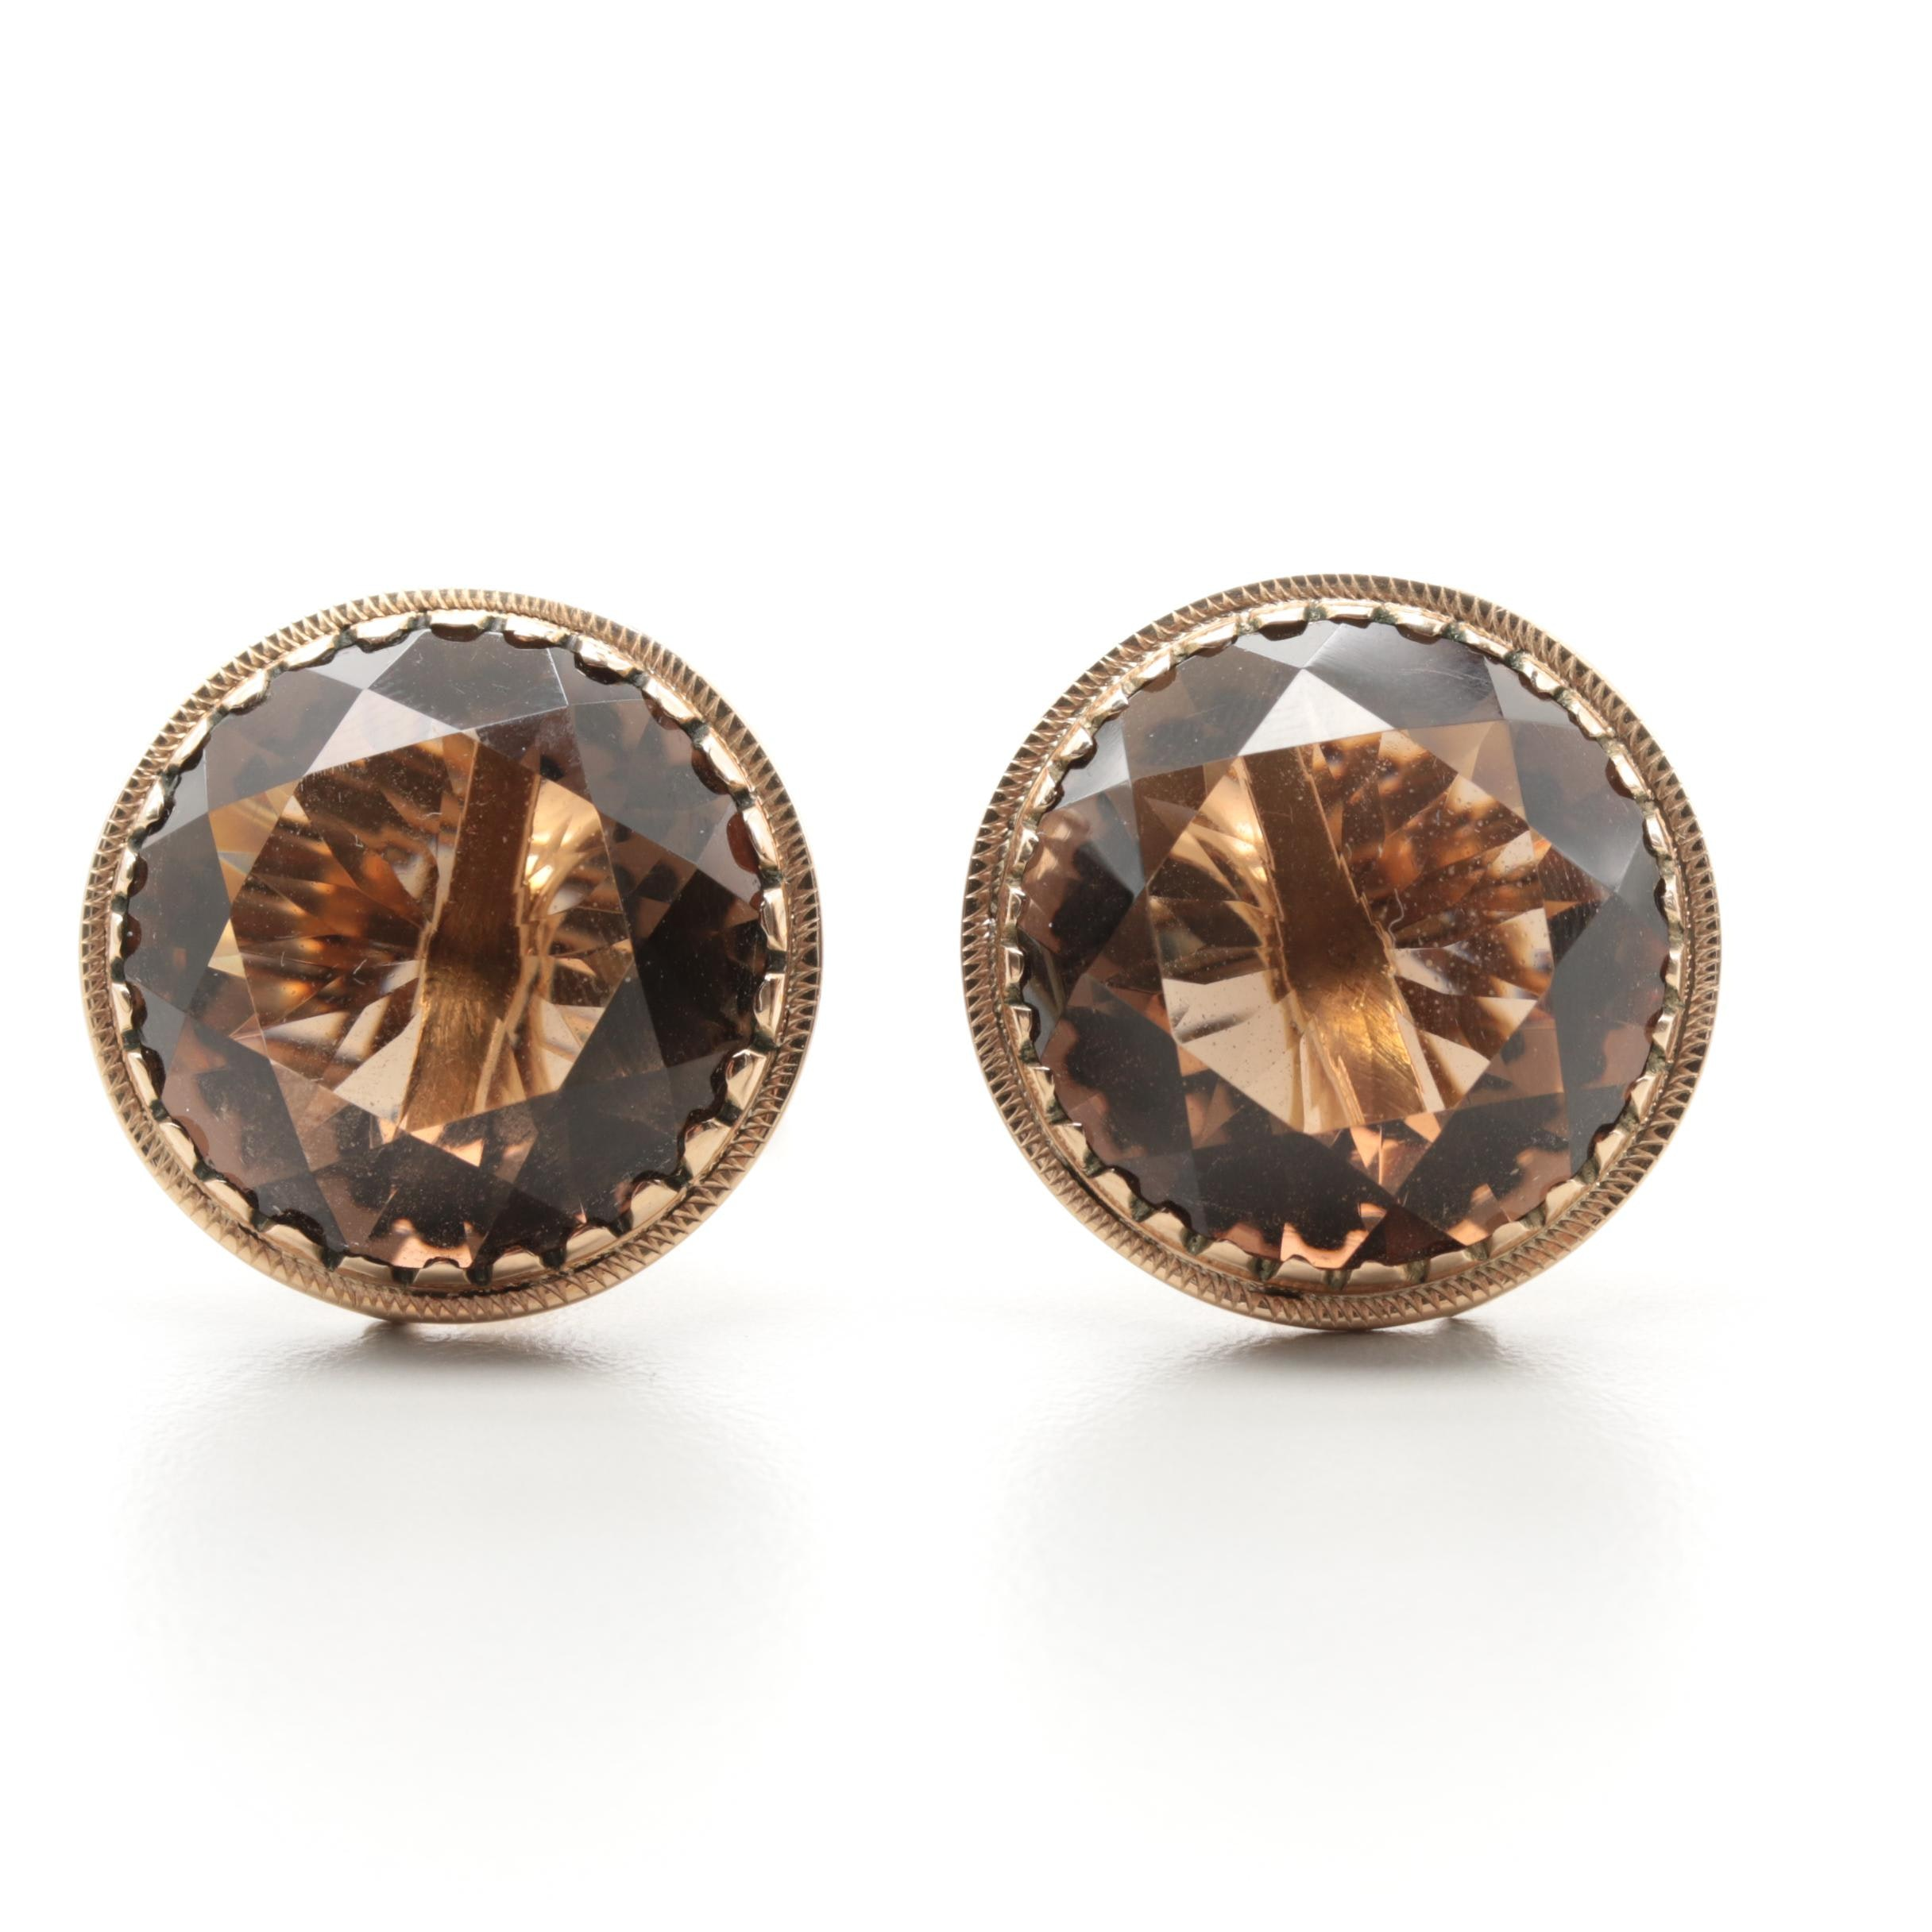 14K Yellow and Rose Gold Smoky Quartz Cufflinks